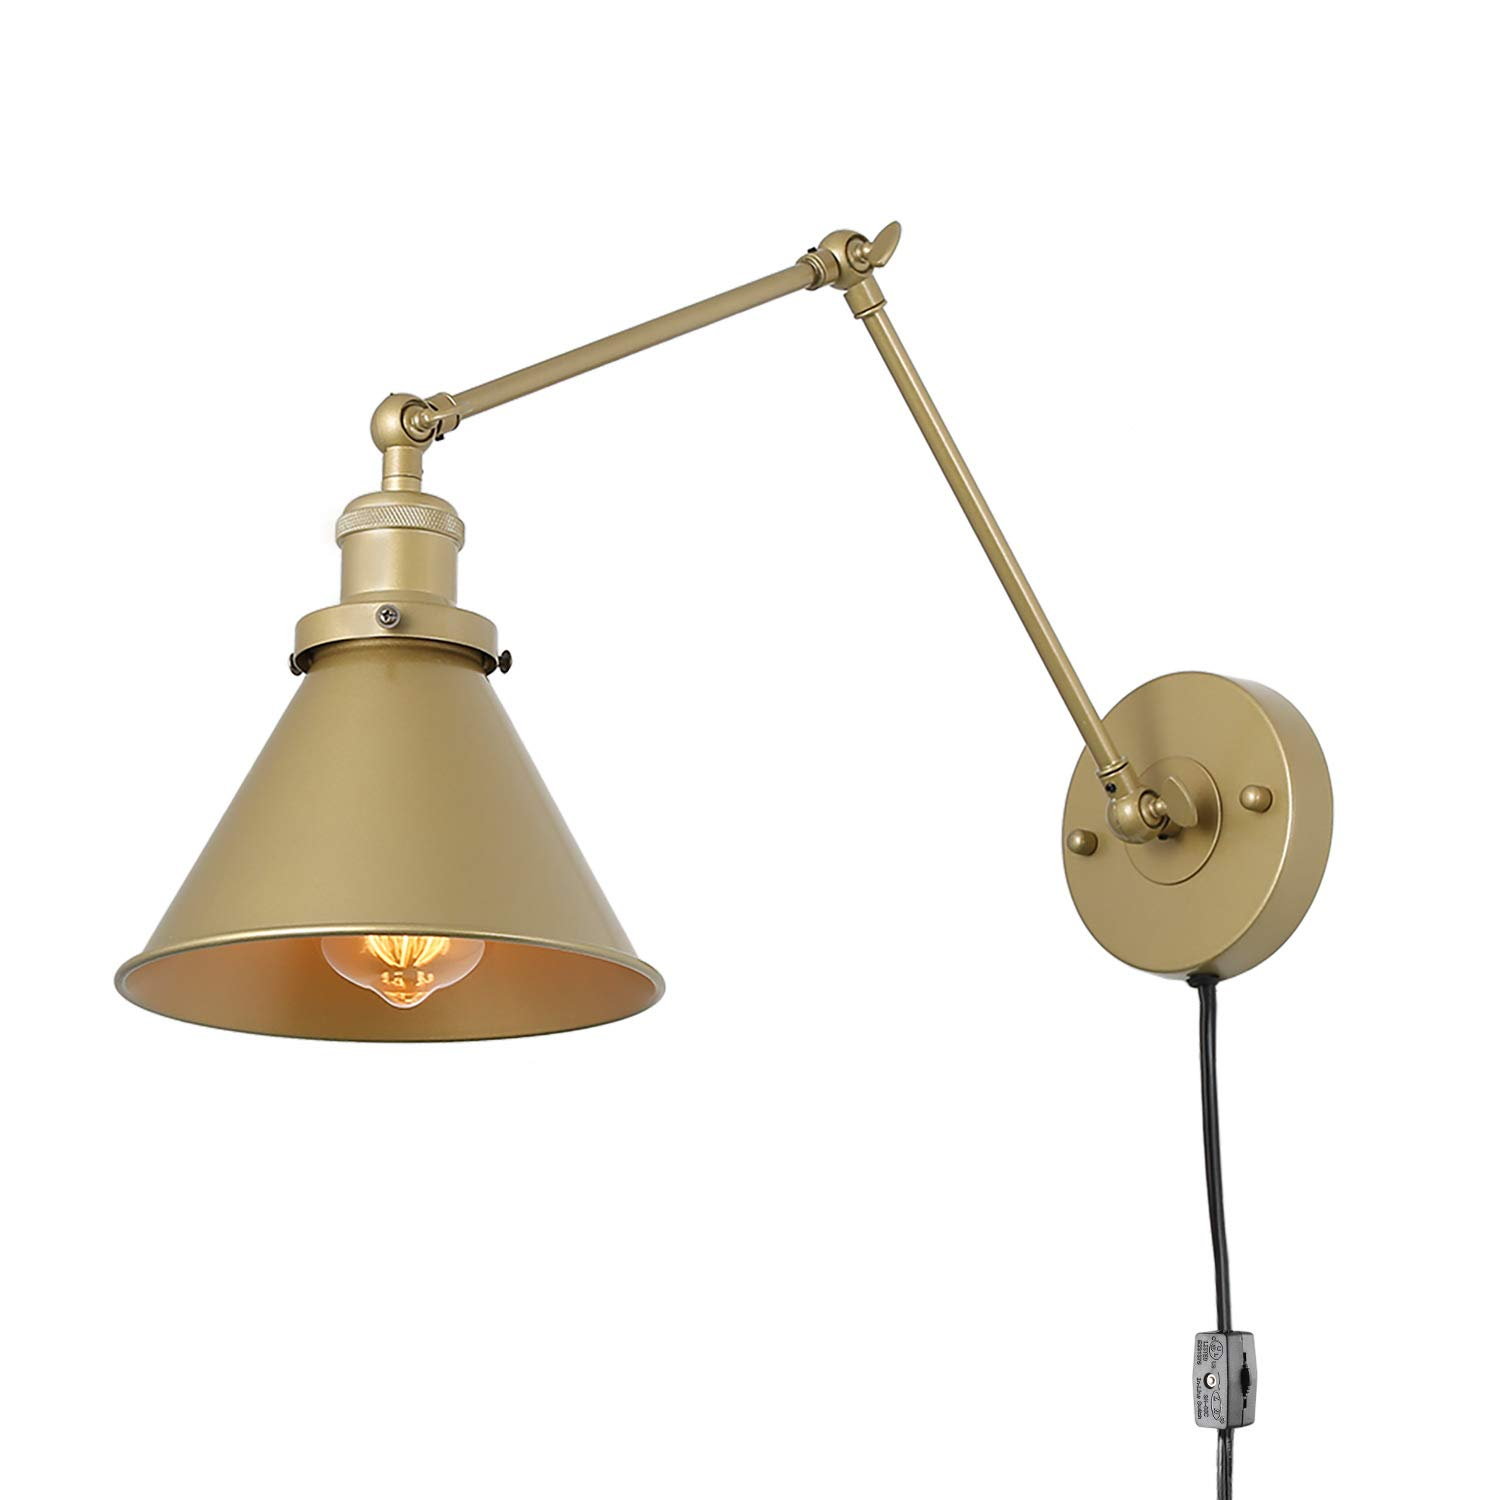 LNC Swing Arm Wall Lamp Adjustable Wall Sconces Plug-in Sconces Wall Lighting (Champagne Gold)